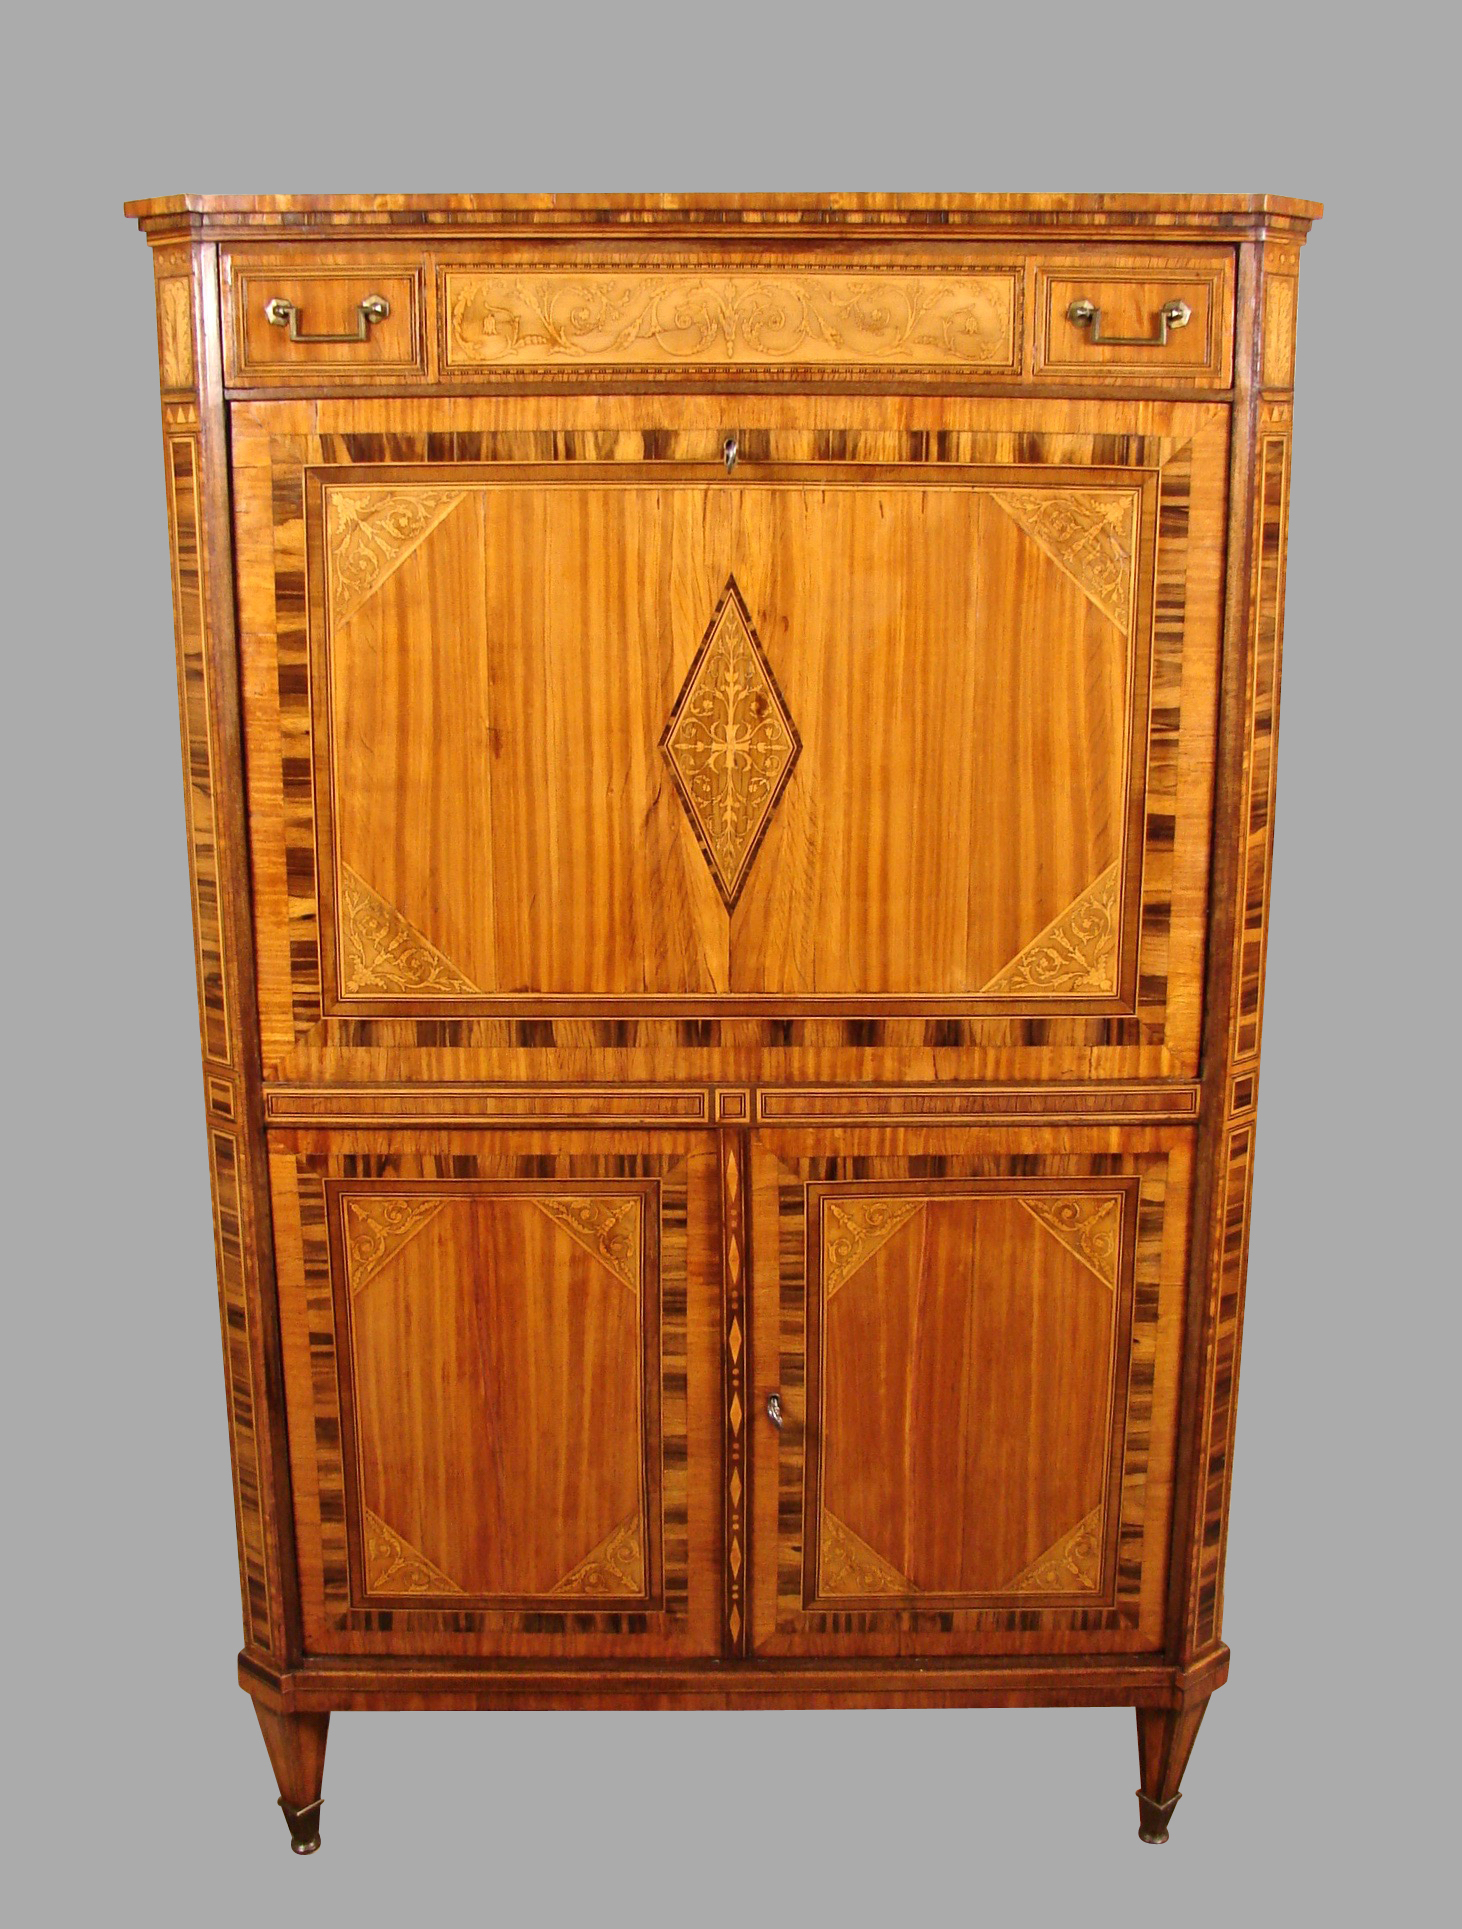 Neoclassical Period Dutch Inlaid Exotic Woods Secretaire Abattant | DANIEL STEIN Antiques San Francisco CA